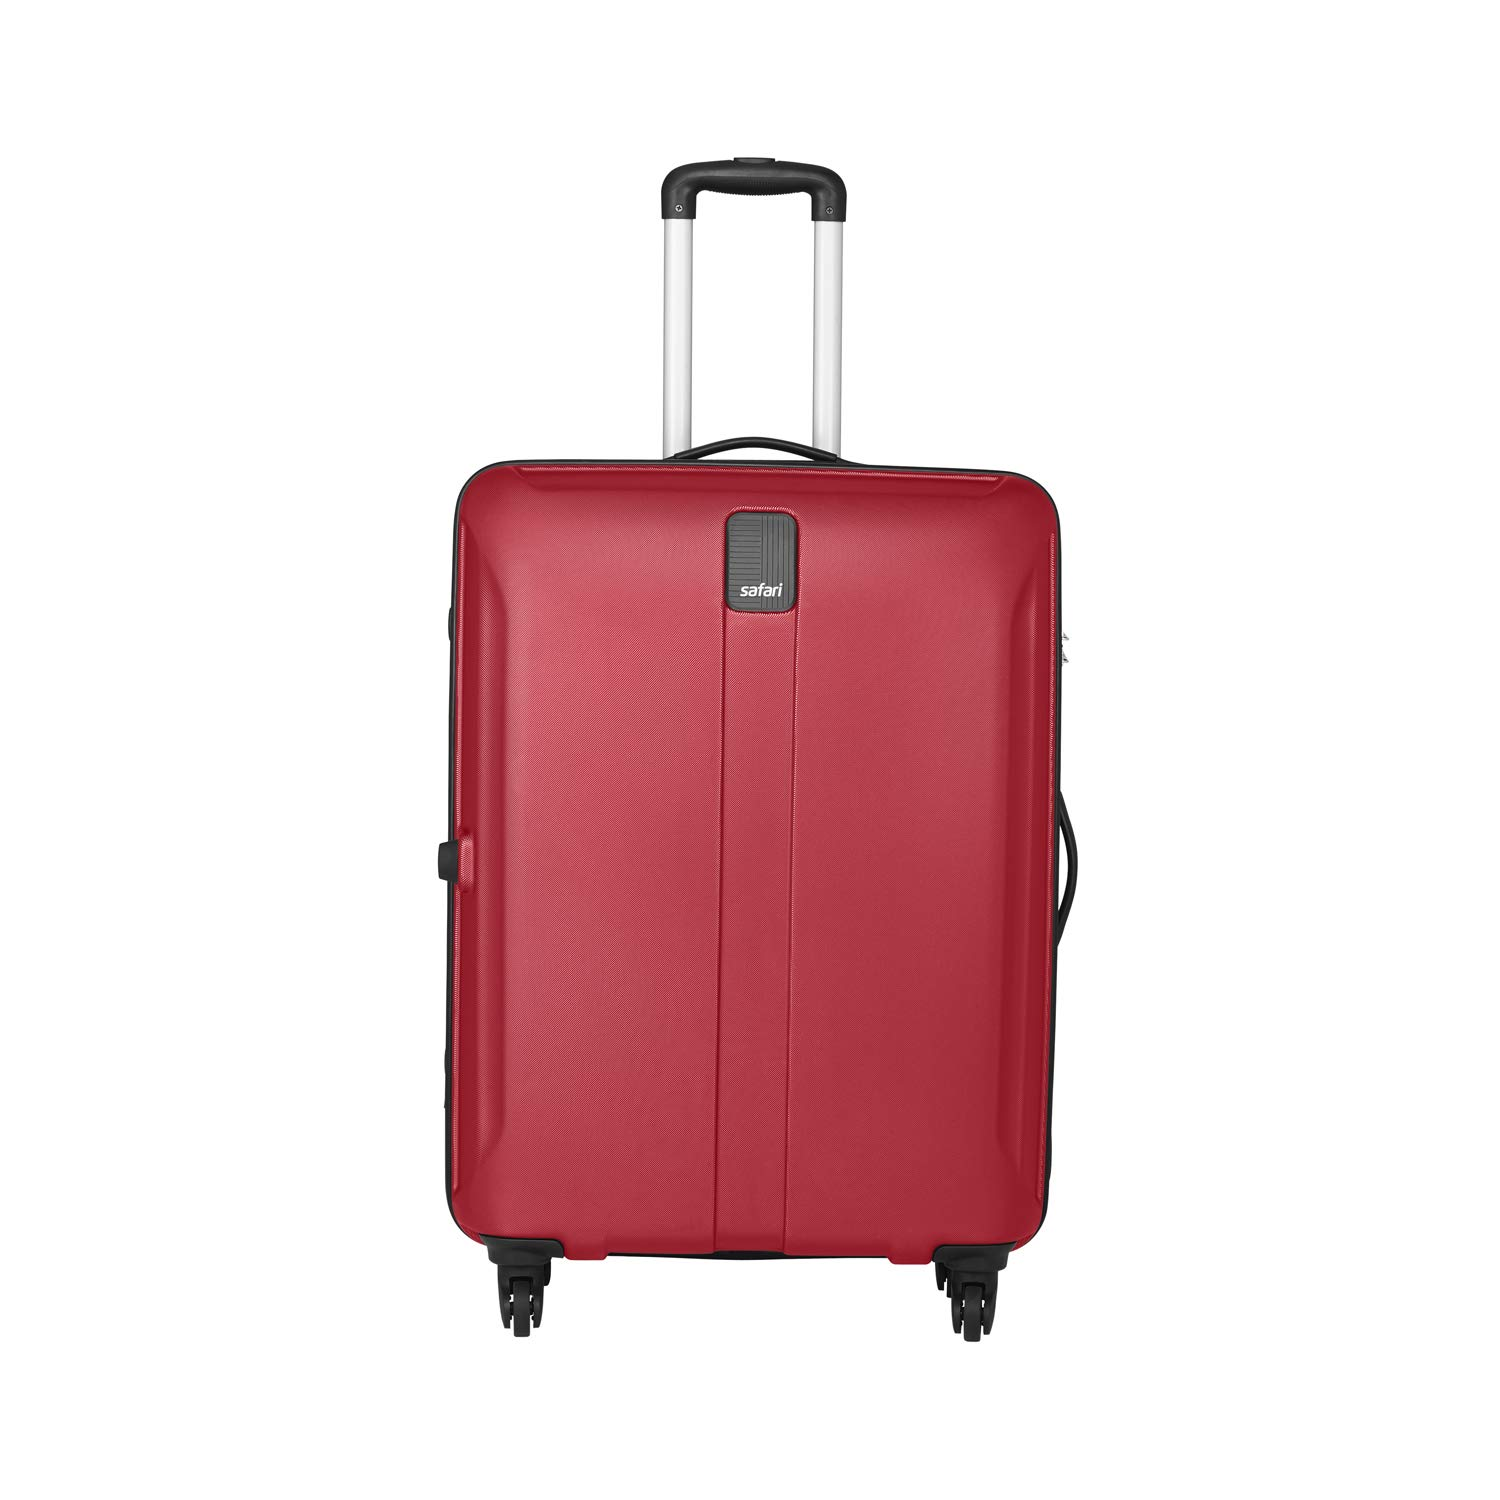 Safari Polycarbonate 55 cms New Red Hardsided Cabin Luggage (THORSHARPANTI554WNRE)